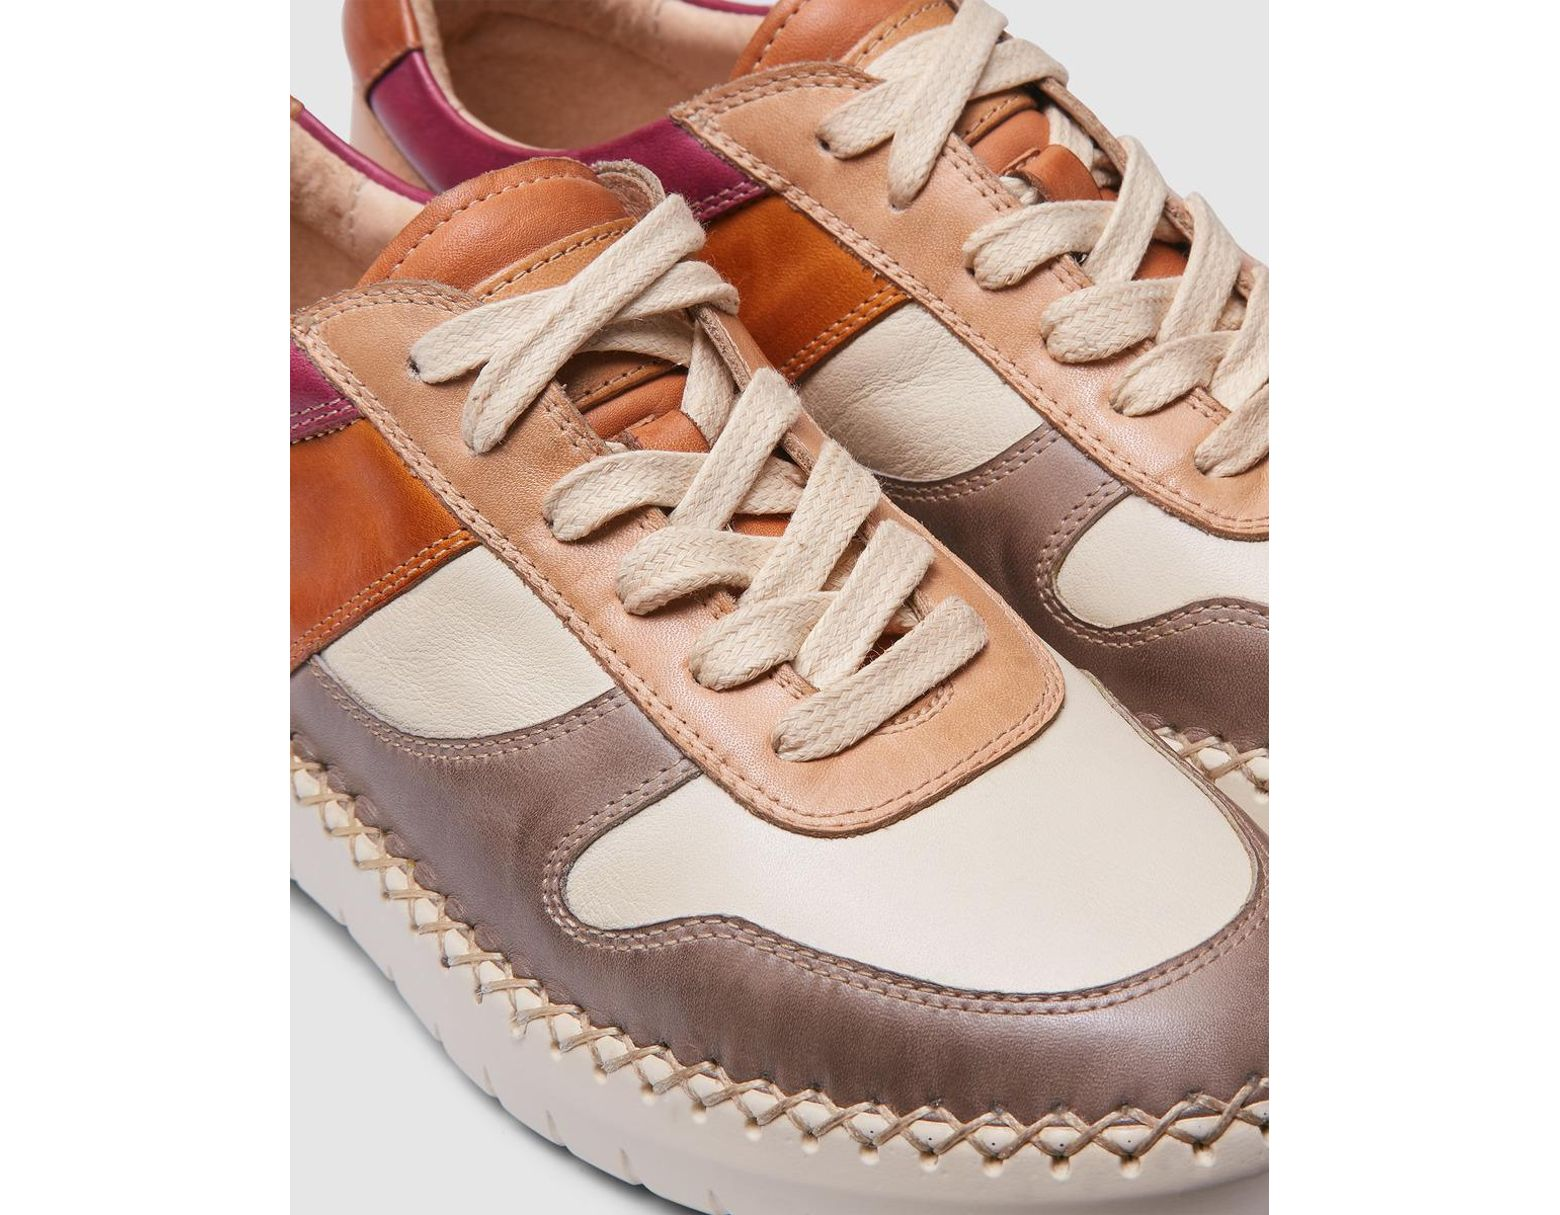 027045124e3 Pikolinos Multicoloured Leather Lace-up Trainers - Lyst